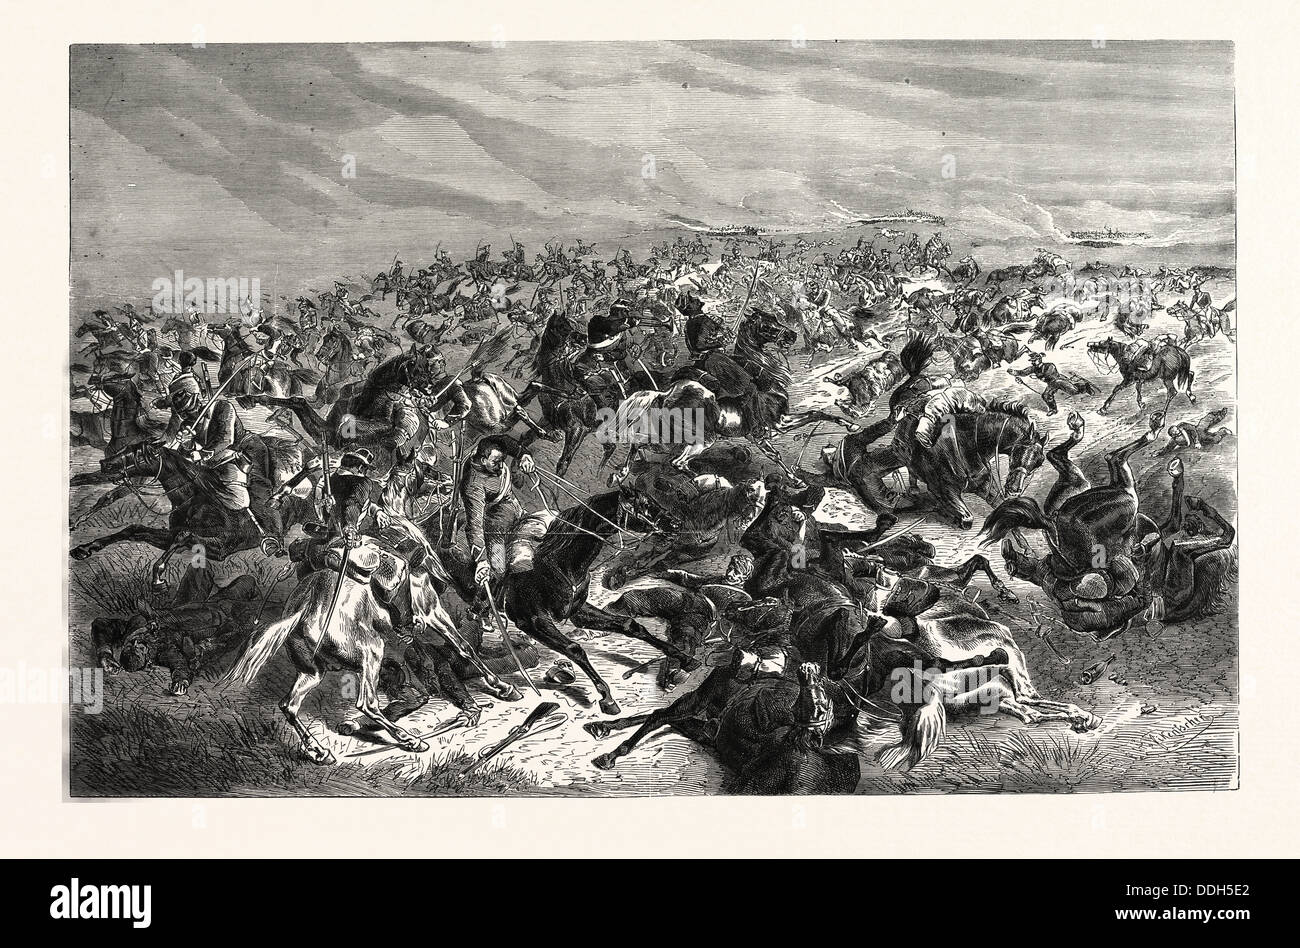 FRANCO-PRUSSIAN WAR: RAPID FIRE OF THE PRUSSIAN INFANTRY RIDERS AGAINST THE FRENCH CAVALRY, THE BATTLE OF SEDAN, Stock Photo